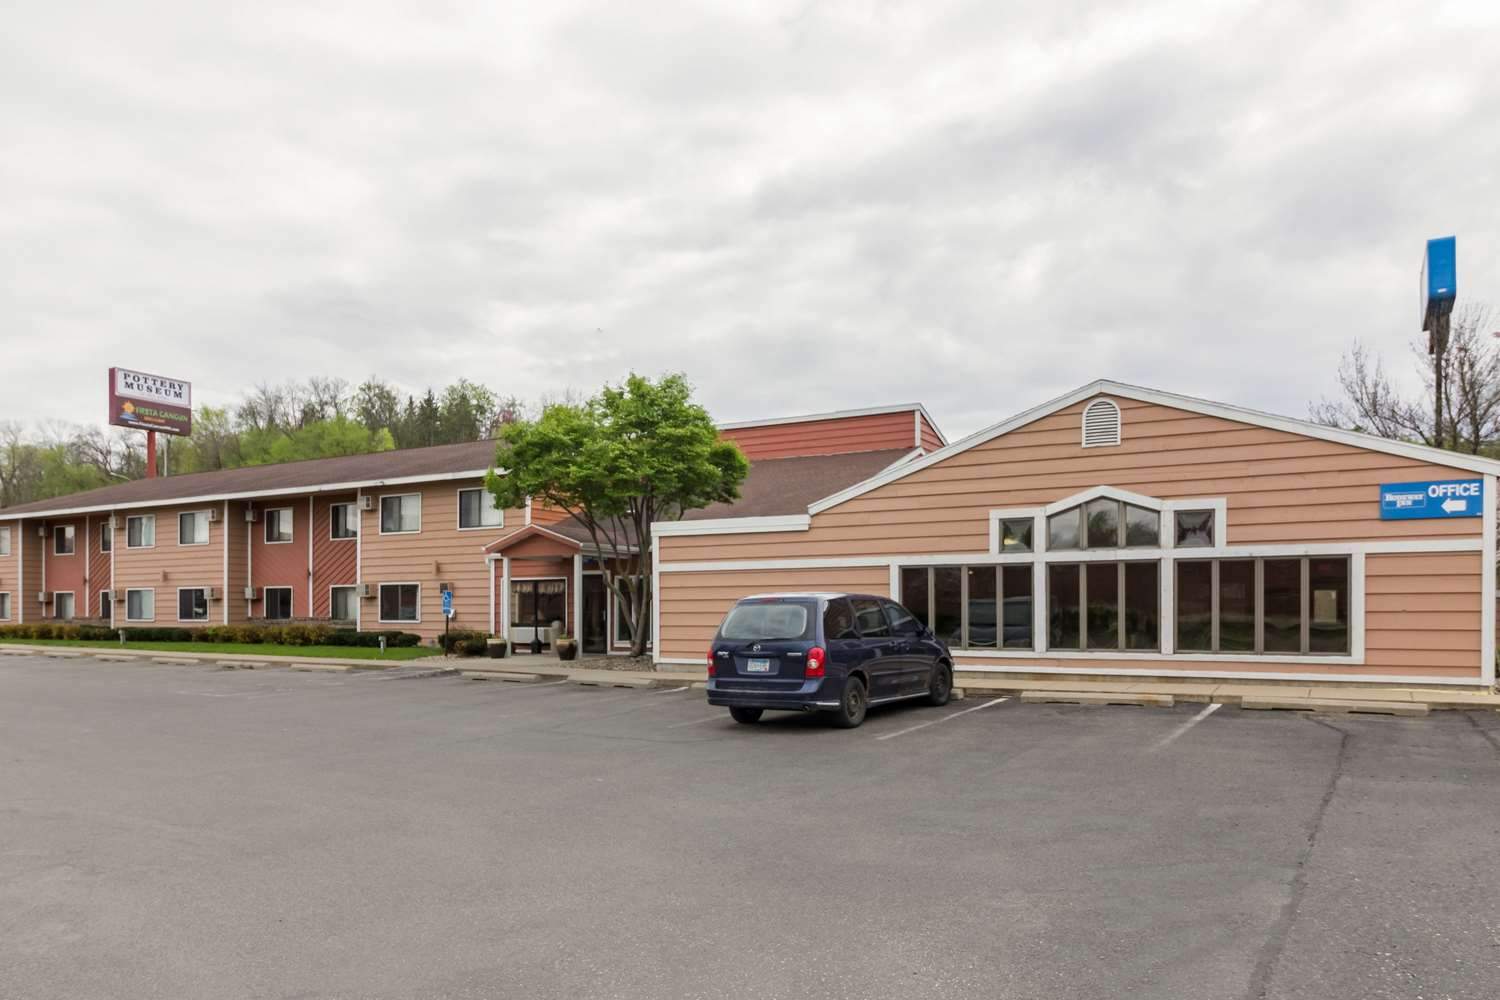 Hotels Near Red Wing Mn That Are Pet Friendly